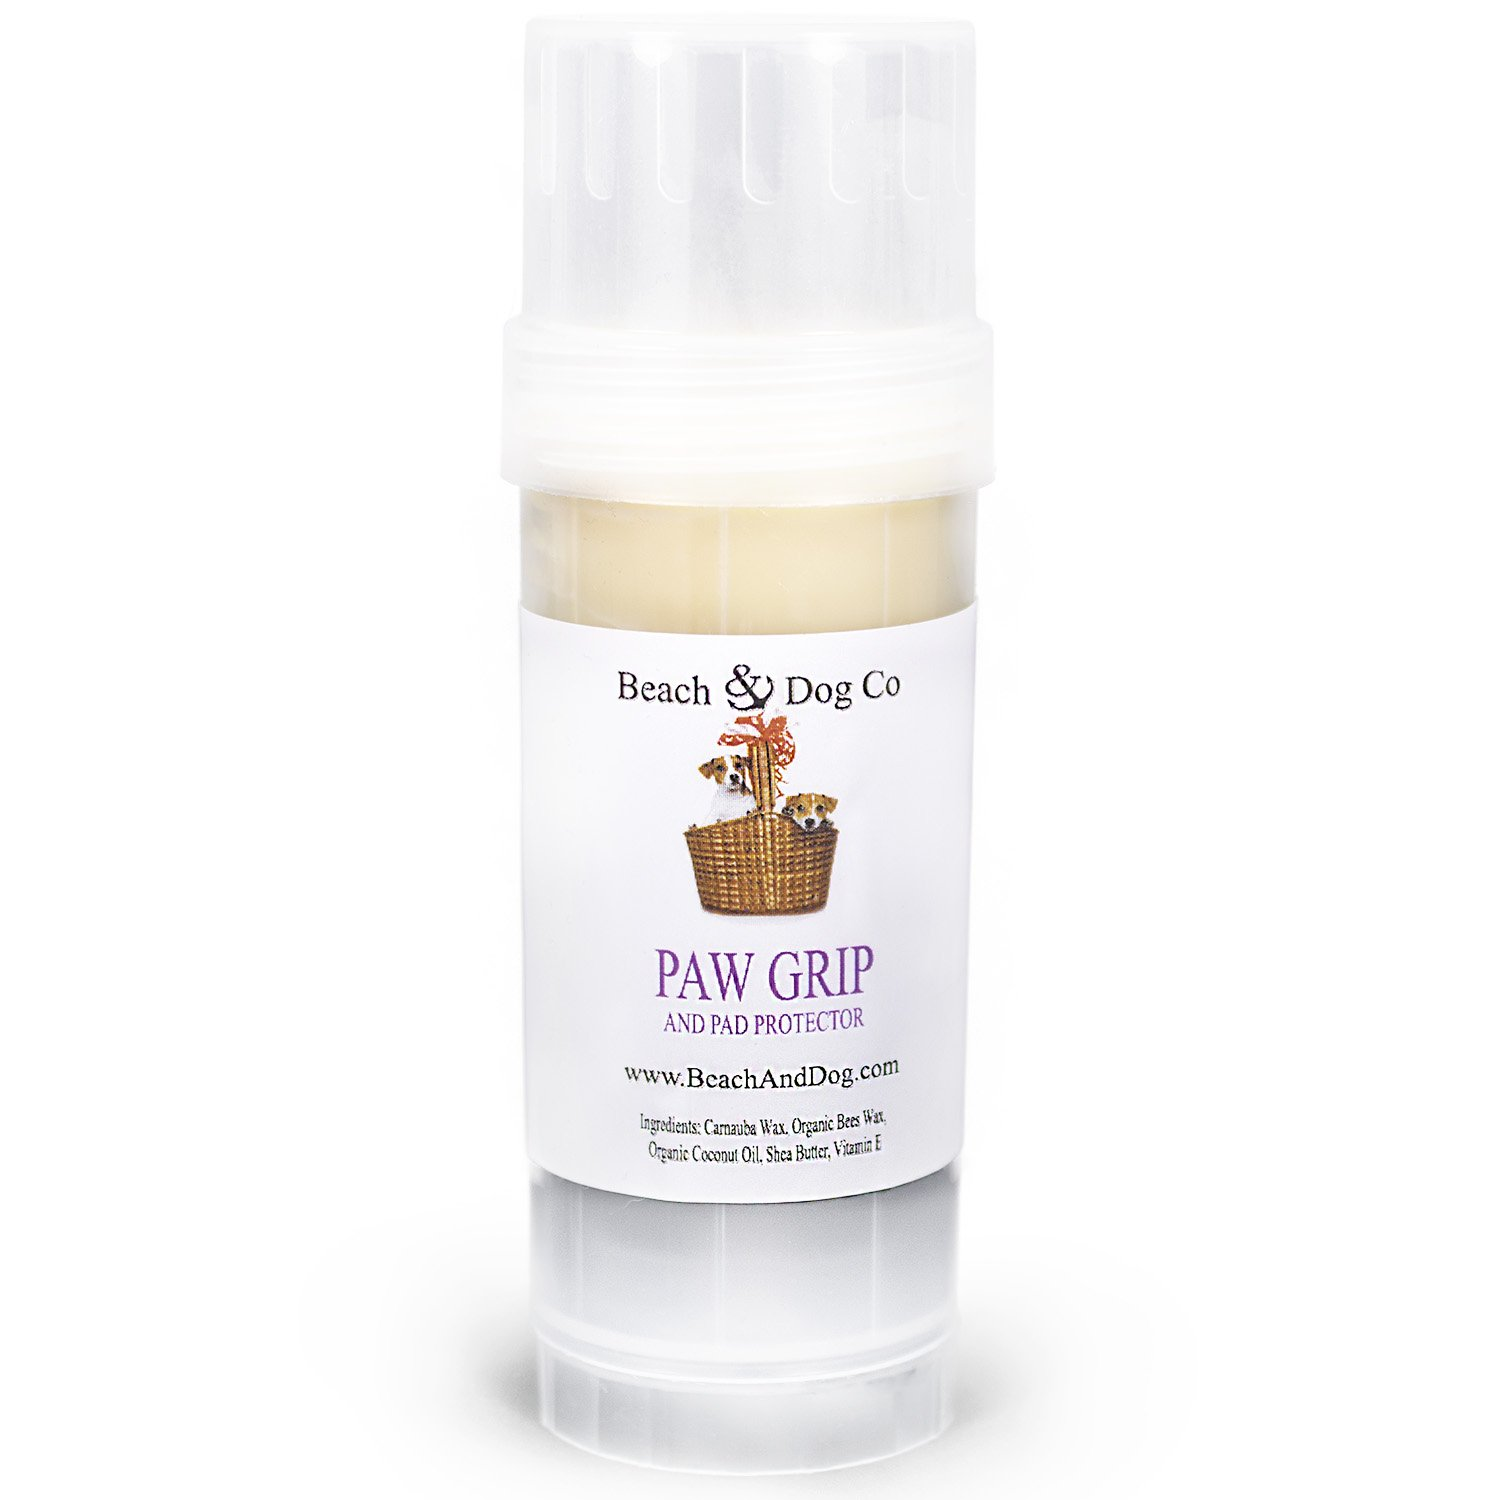 Paw Grip - All Natural and Organic Formula for Dogs (2 oz)